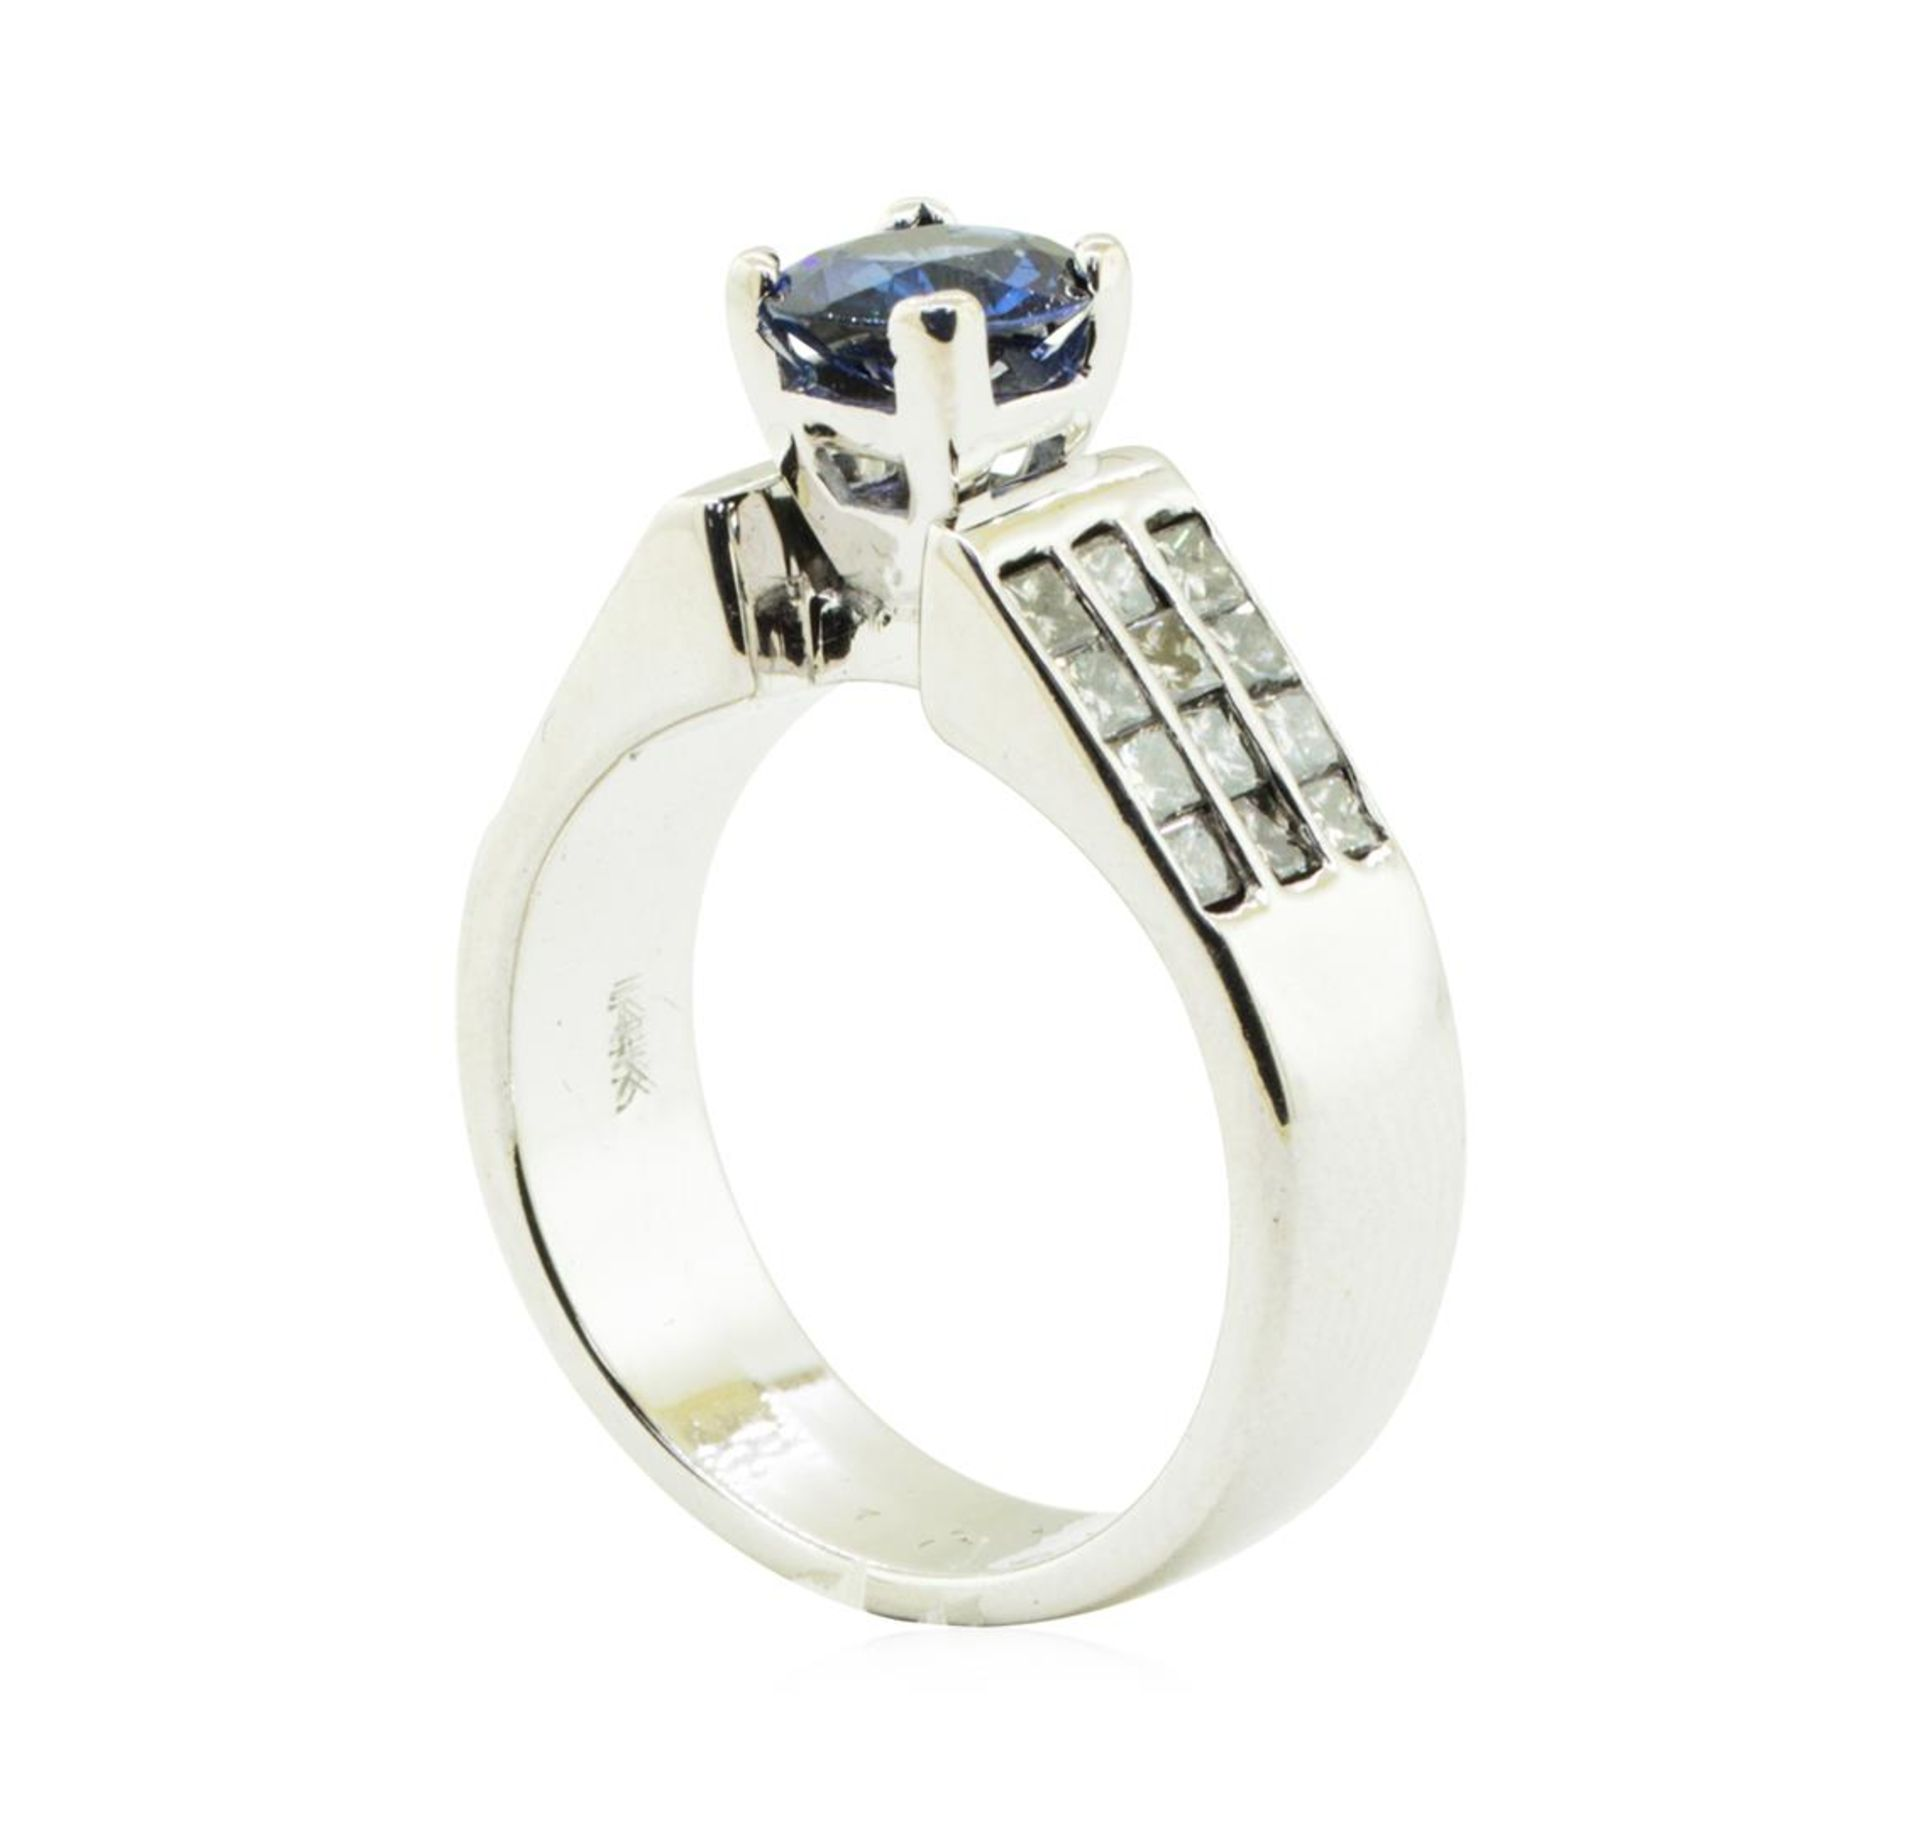 2.17 ctw Oval Brilliant Blue Sapphire And Diamond Ring - 14KT White Gold - Image 4 of 5